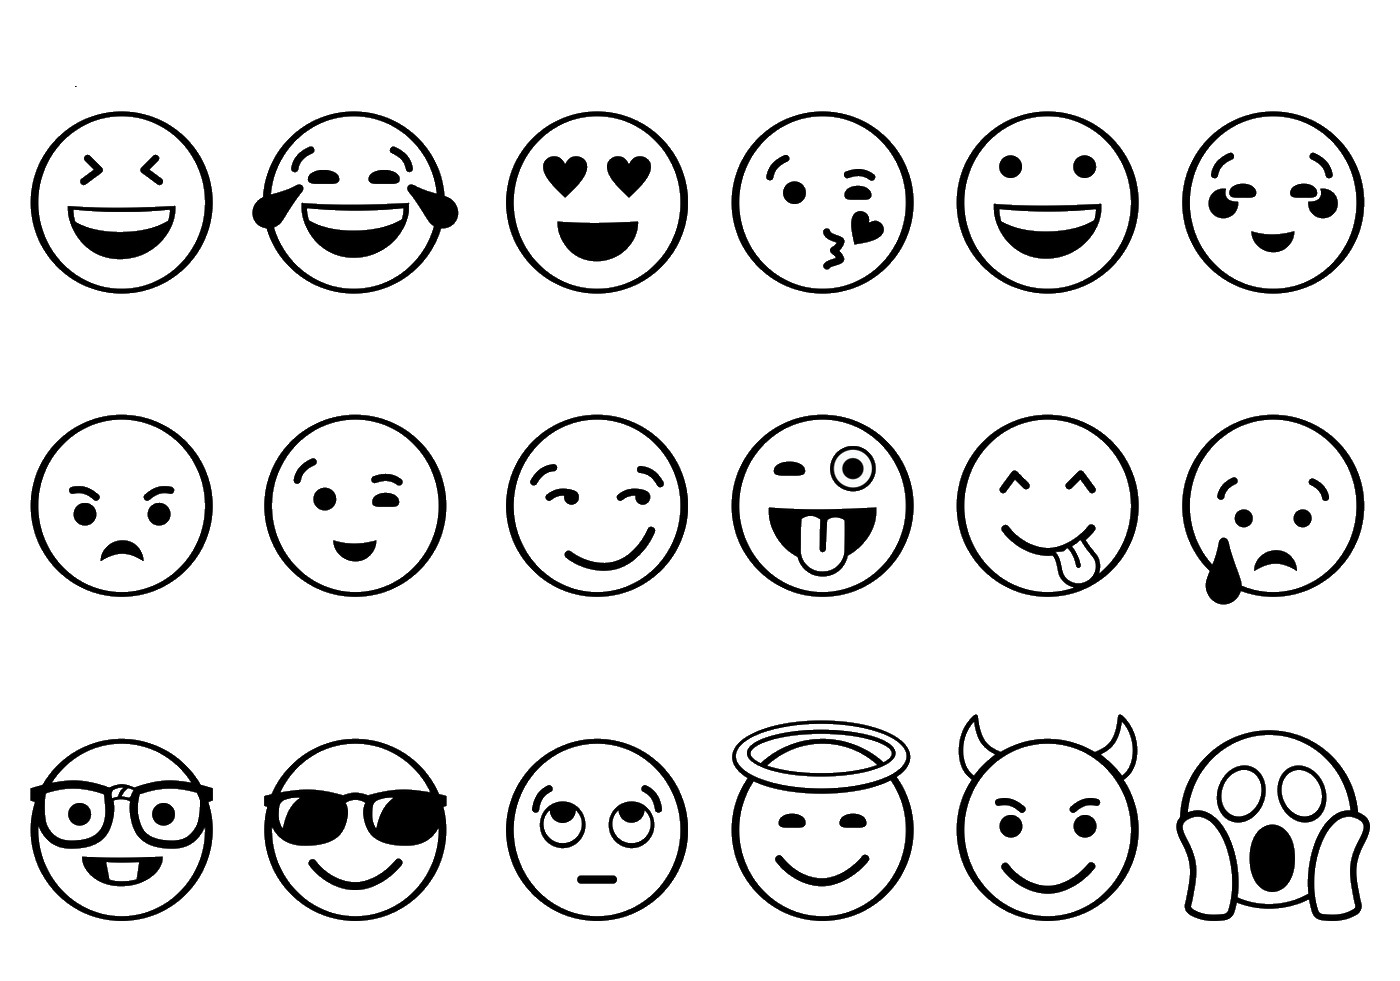 emoji coloring pages - emoji coloring pages on to the color sketch templates